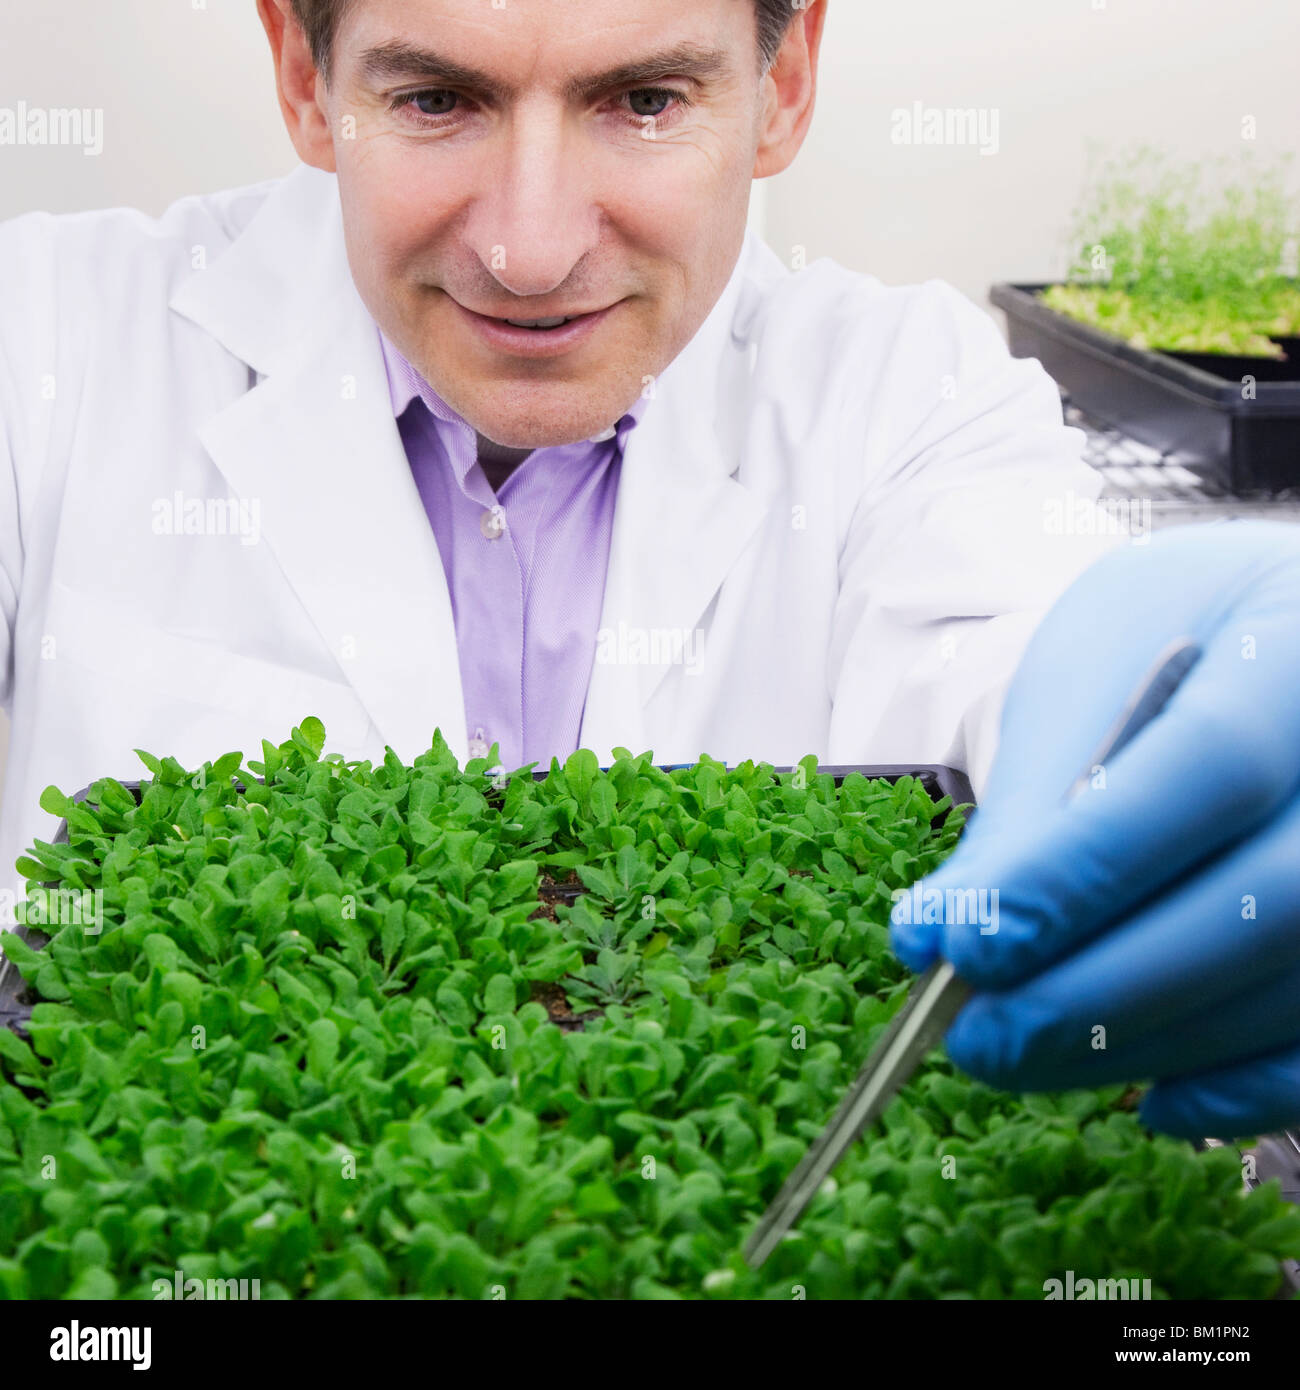 Scientist researching on plants in a laboratory - Stock Image